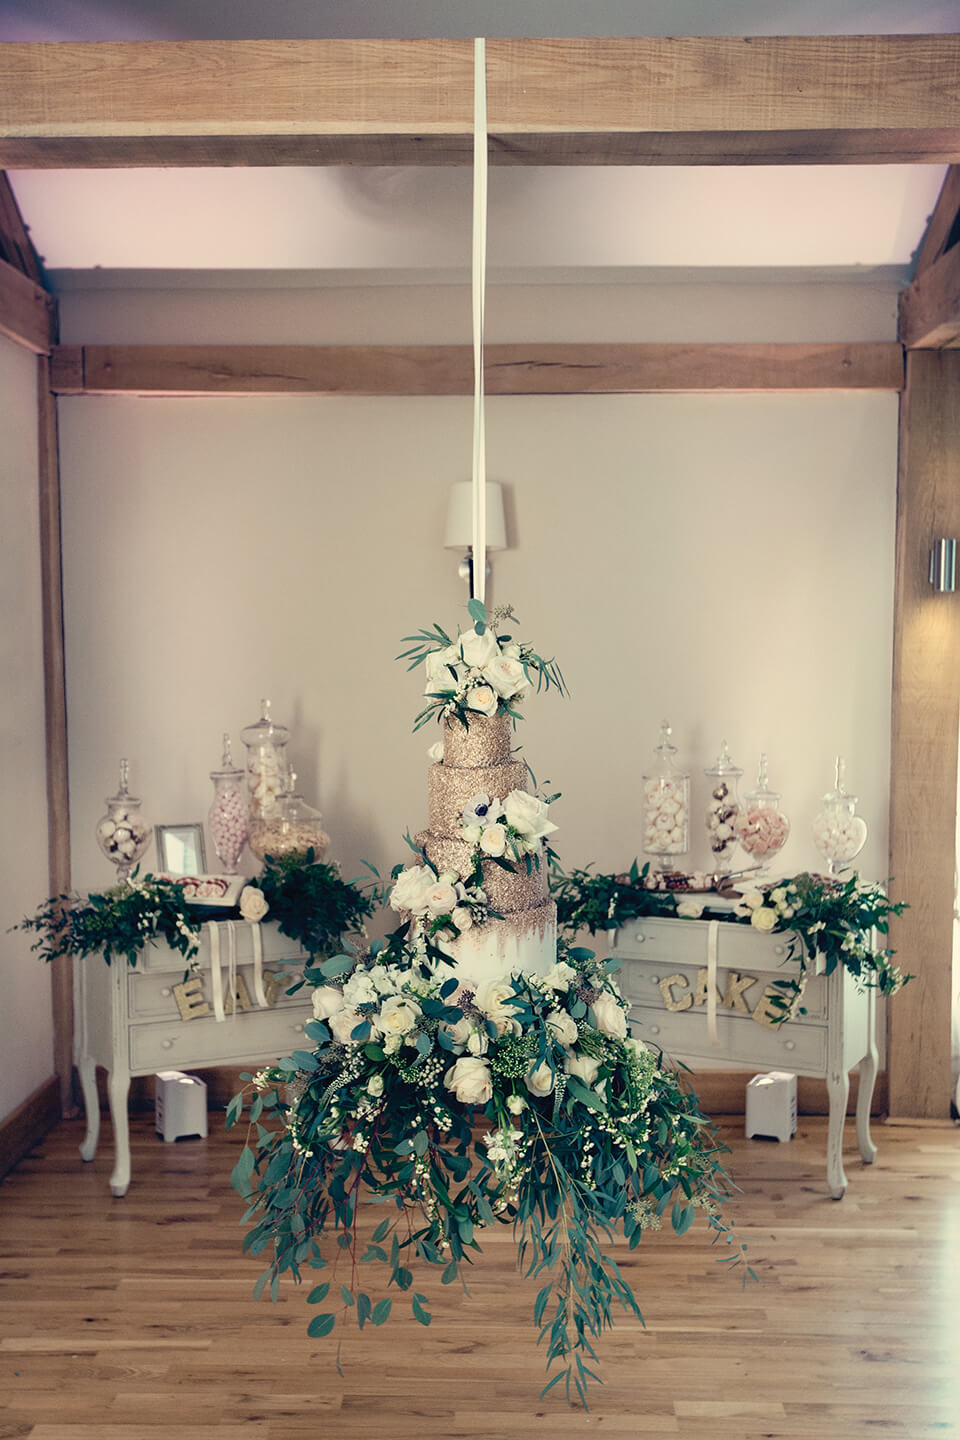 Guests were wowed by the couple's chandelier wedding cake decorated with white flowers and foliage and gold glitter